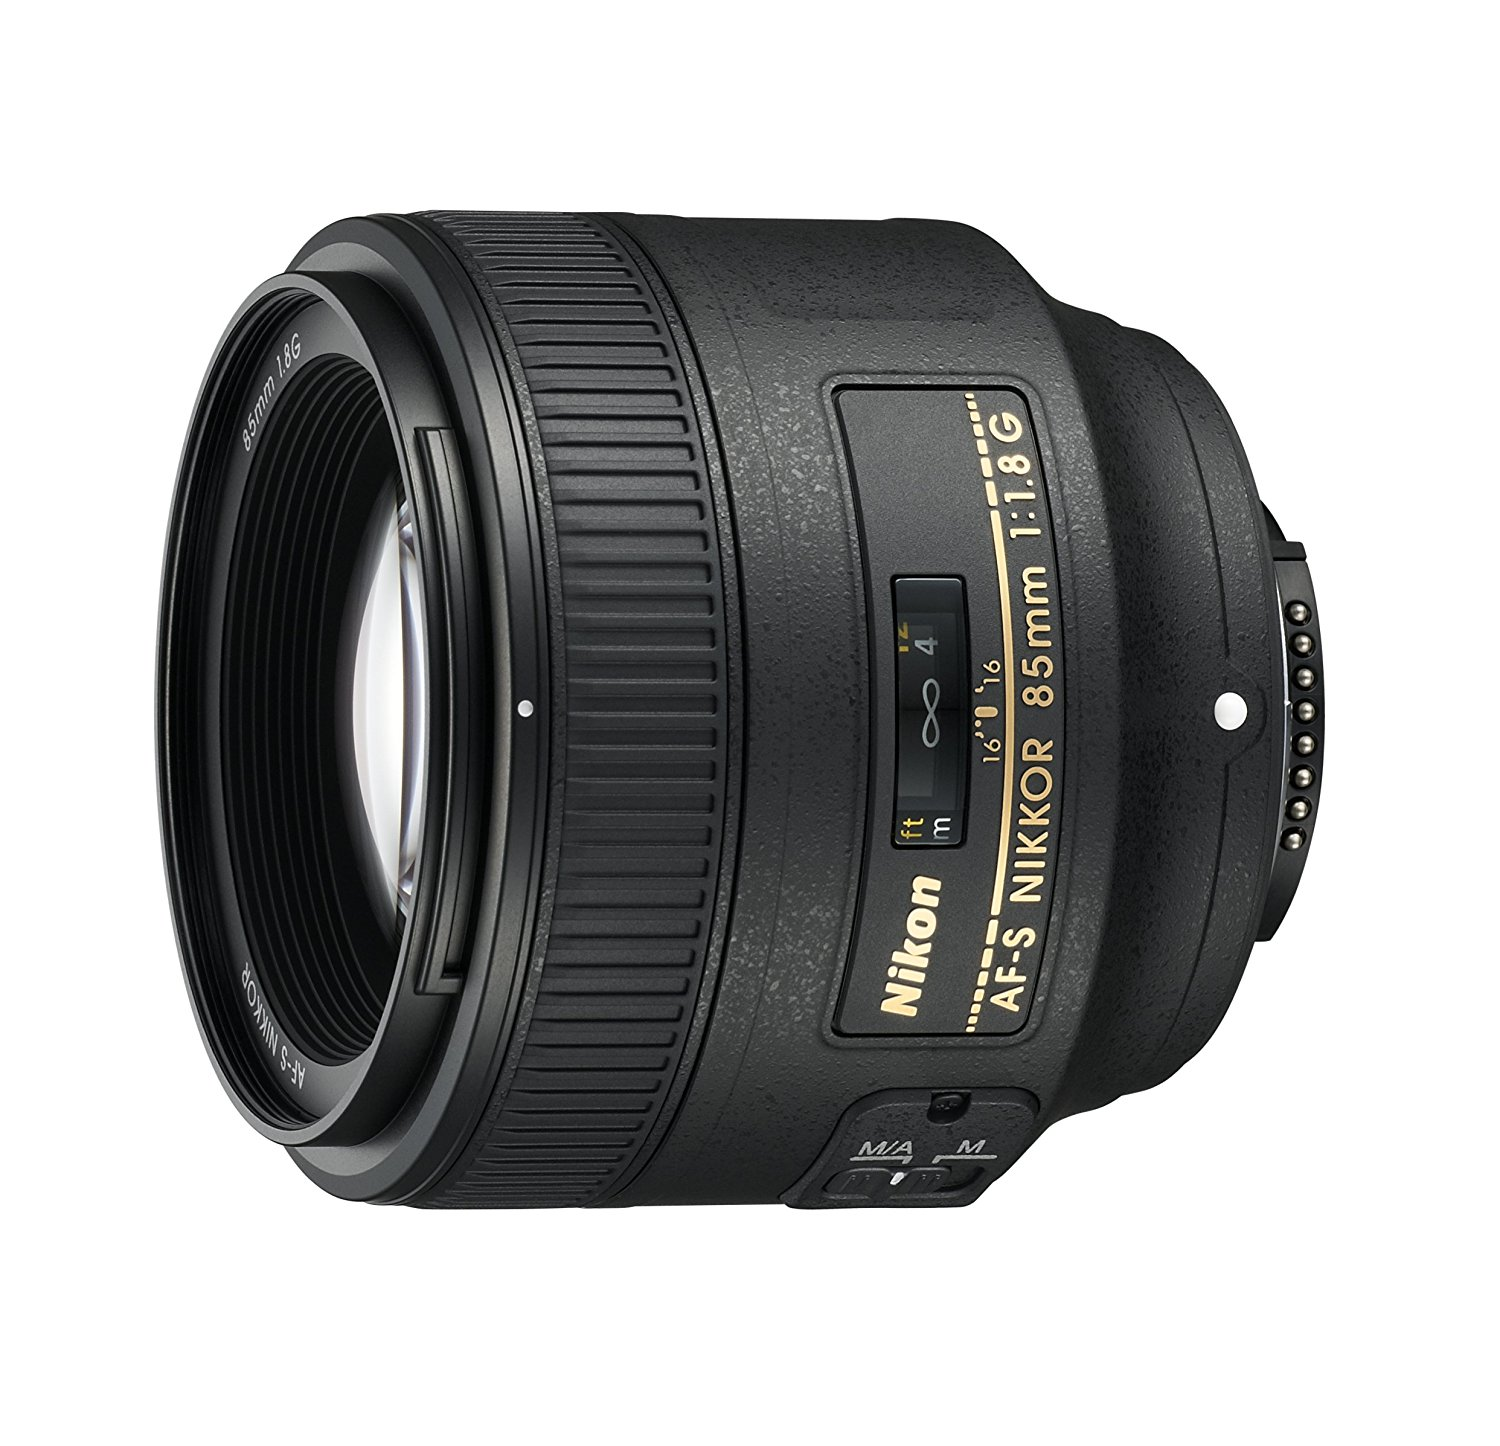 85mm Lens - Nikon AF S NIKKOR 85mm f/1.8G Fixed Lens with Auto Focus for Nikon DSLR Cameras